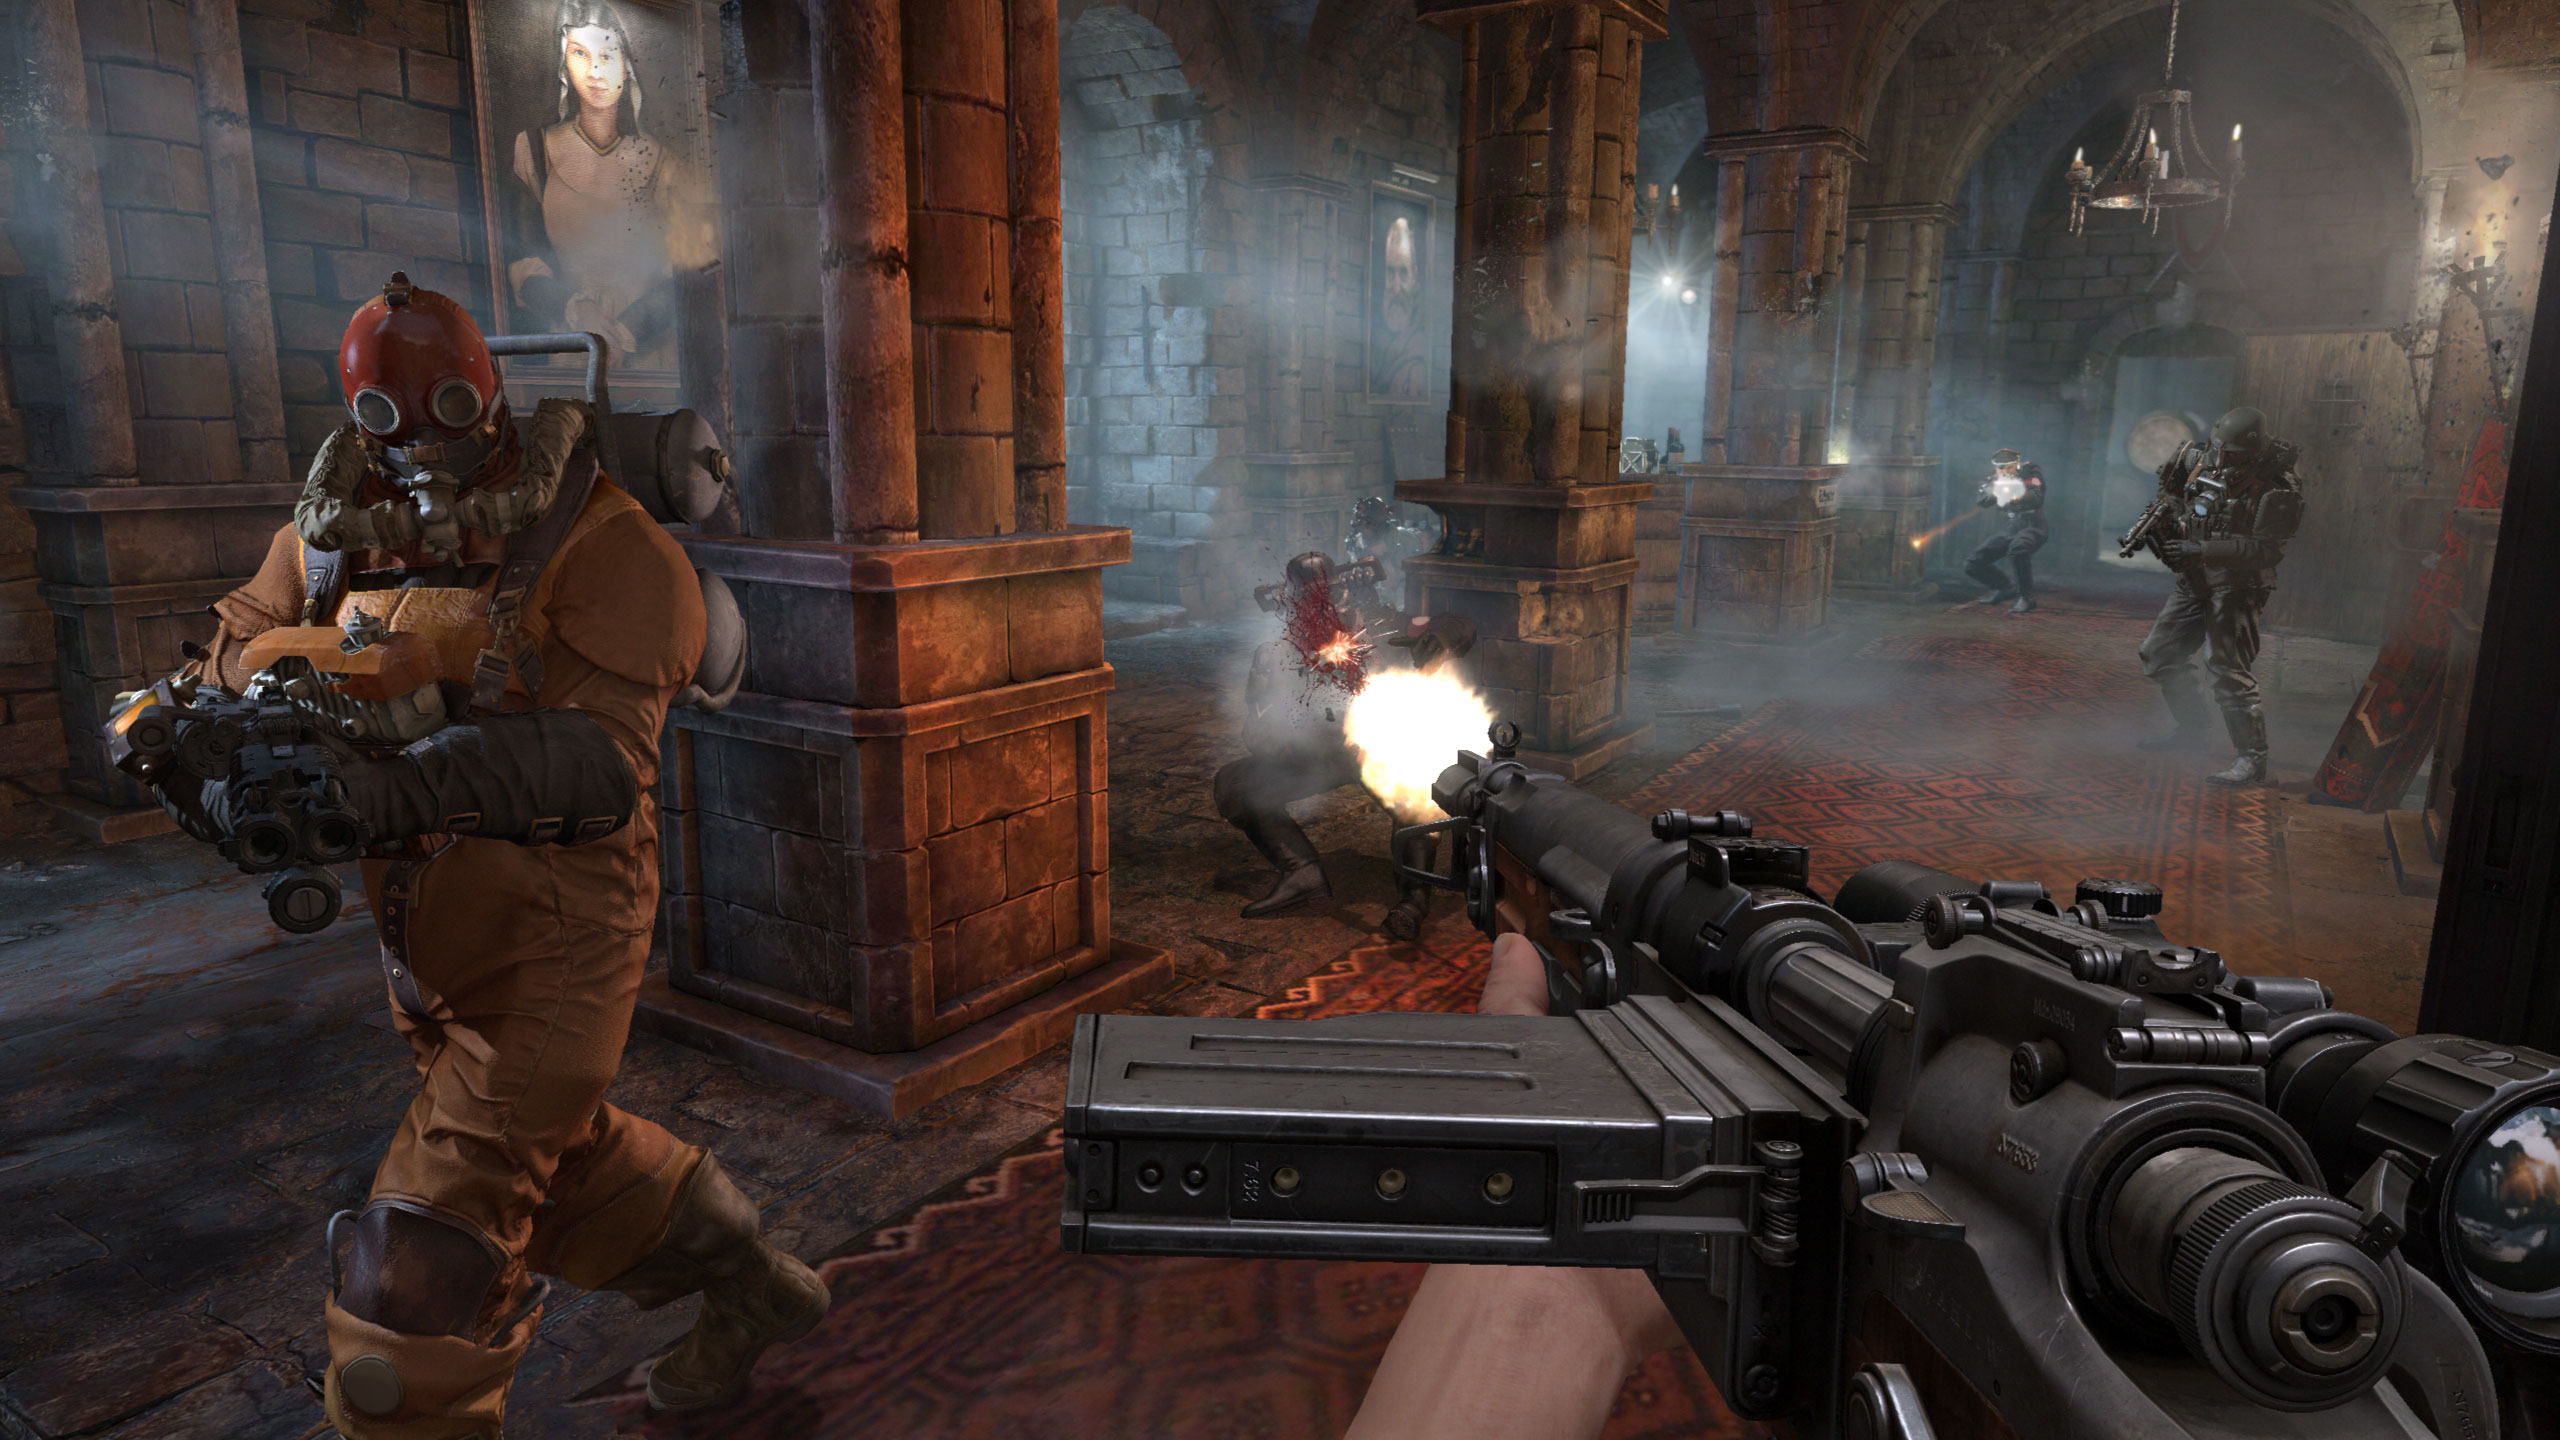 third person shooter video game - HD2560×1440